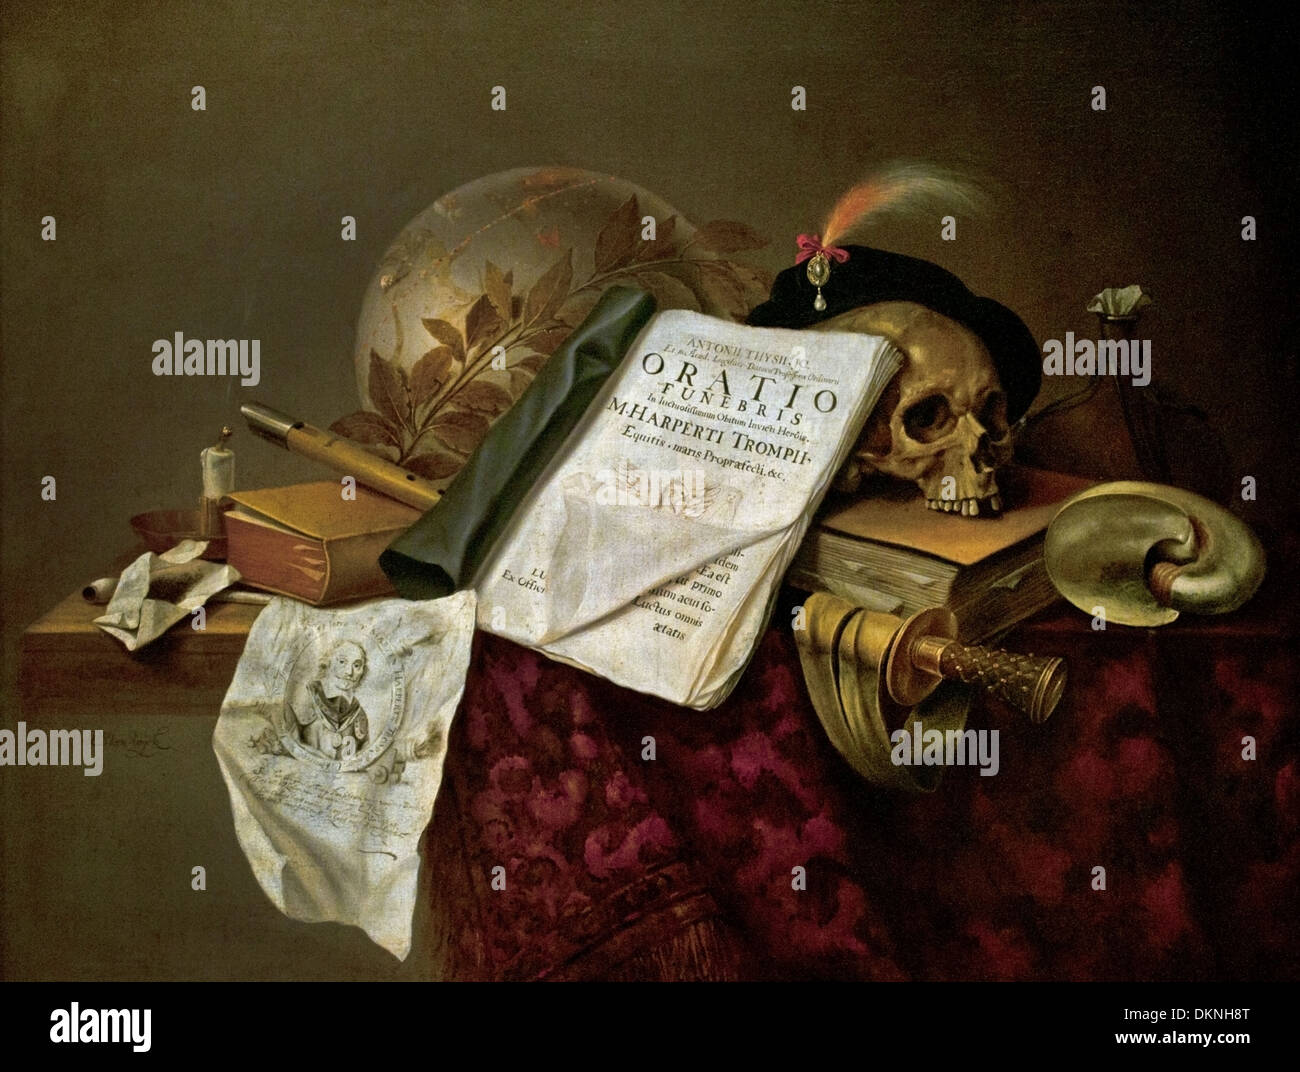 Pieter Steenwijck  1615 - 1656 Still Life (Allegory of the death of Admiral Tromp) Date: ca 1655 Dutch Netherlands - Stock Image